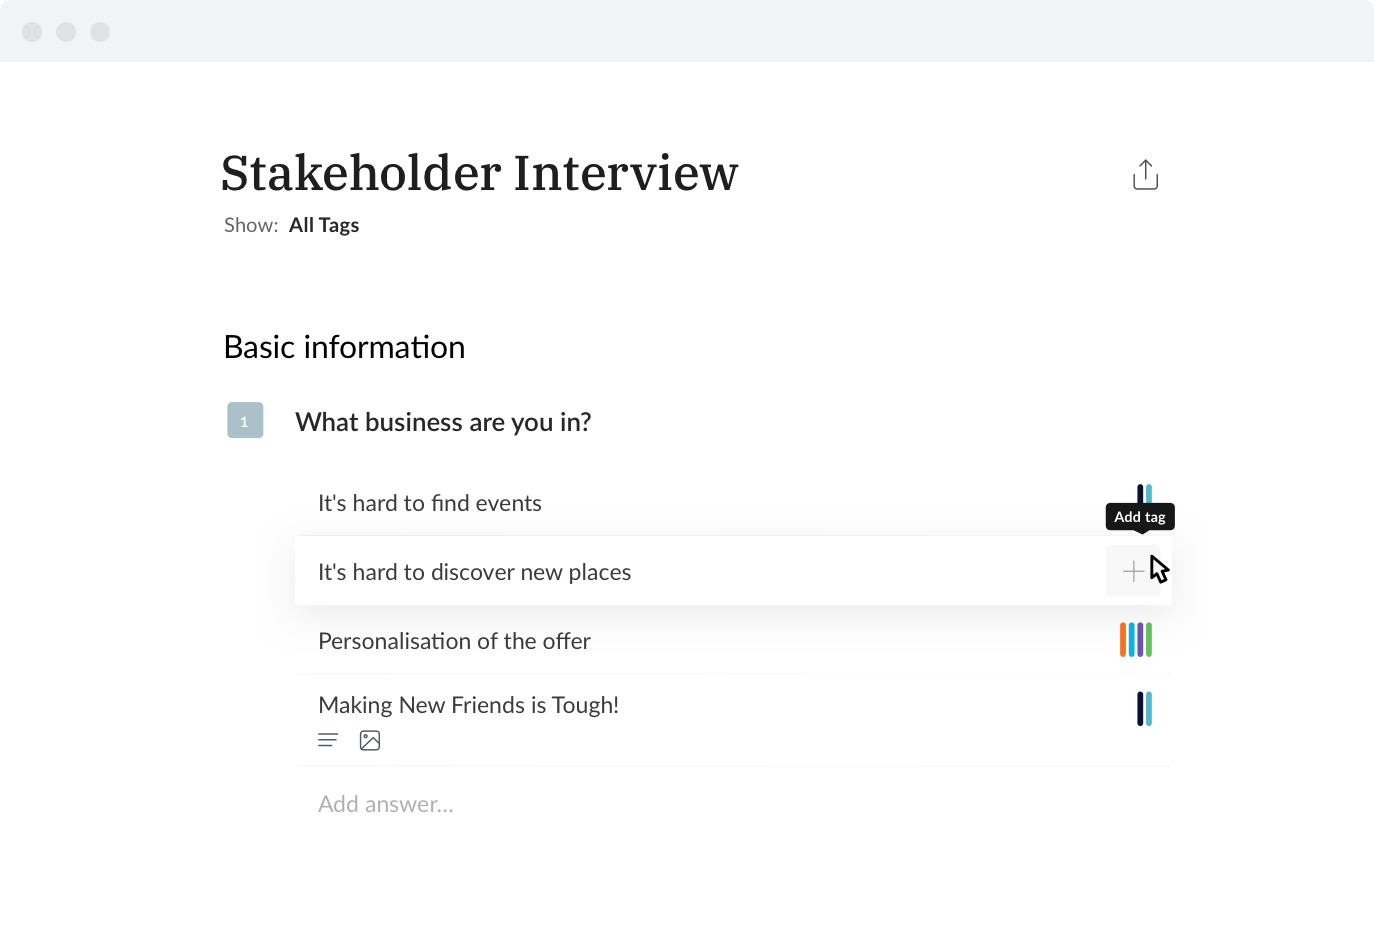 Stakeholder Interview image